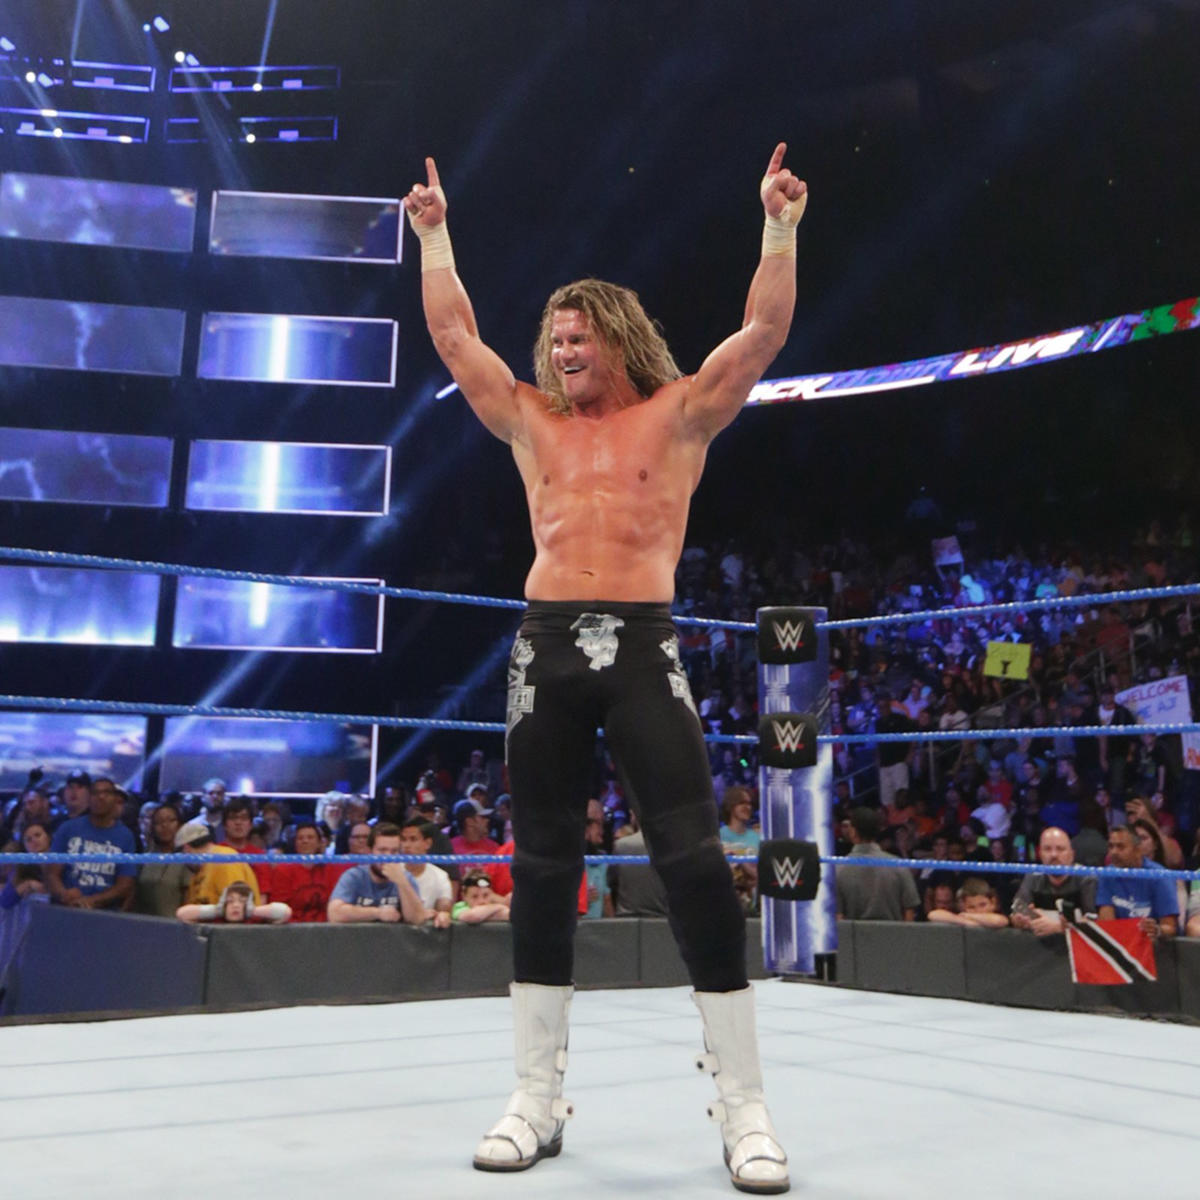 Ziggler celebrates his win as SmackDown LIVE concludes.